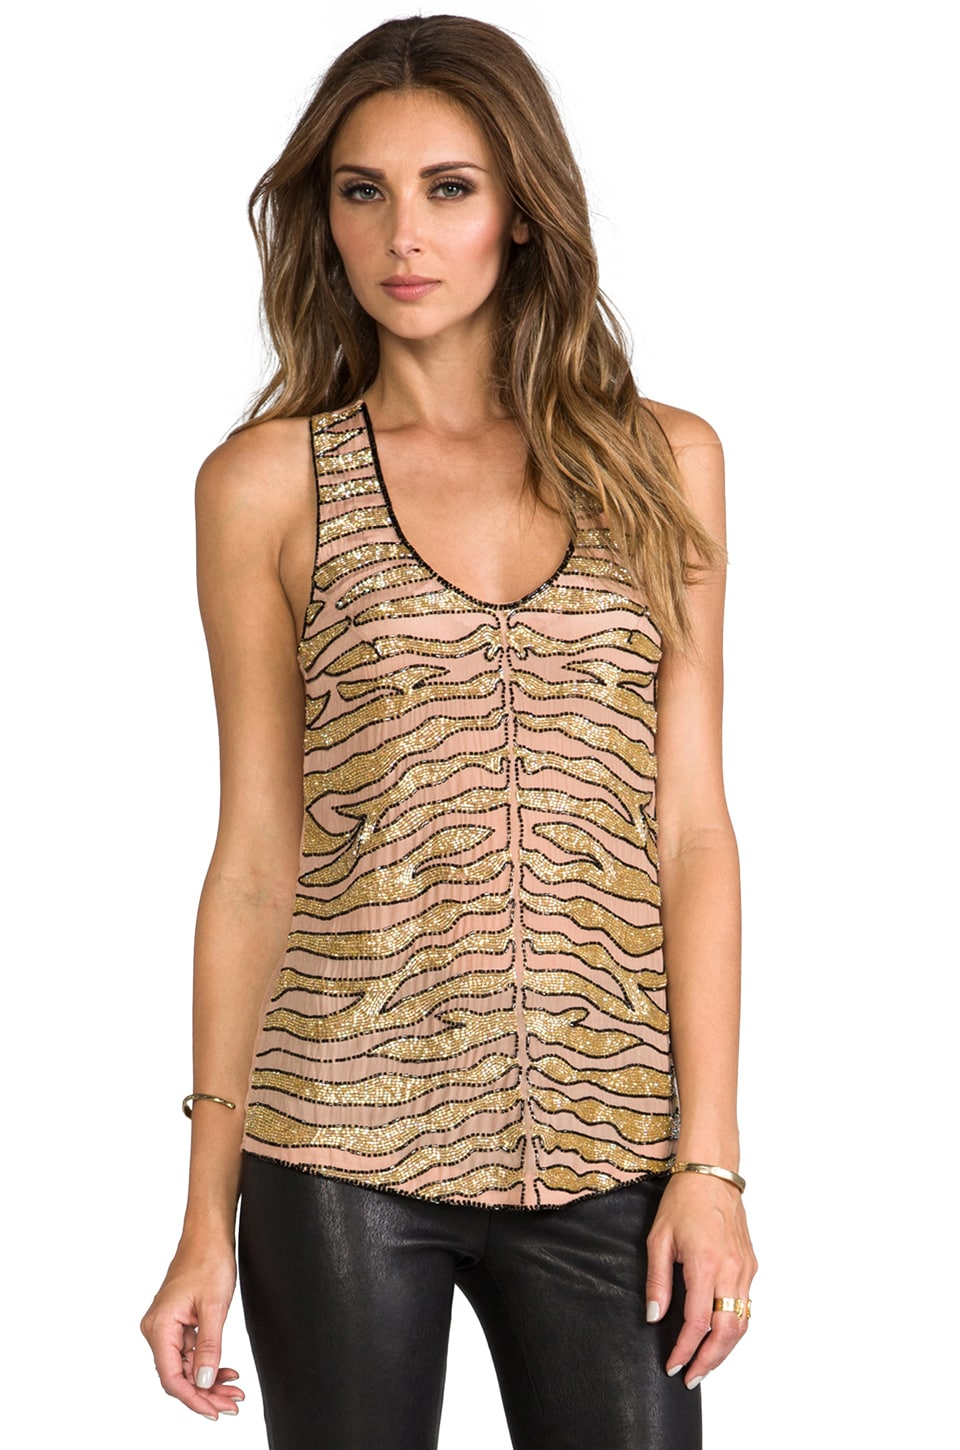 Karina Grimaldi Kenya Beaded Top in Nude